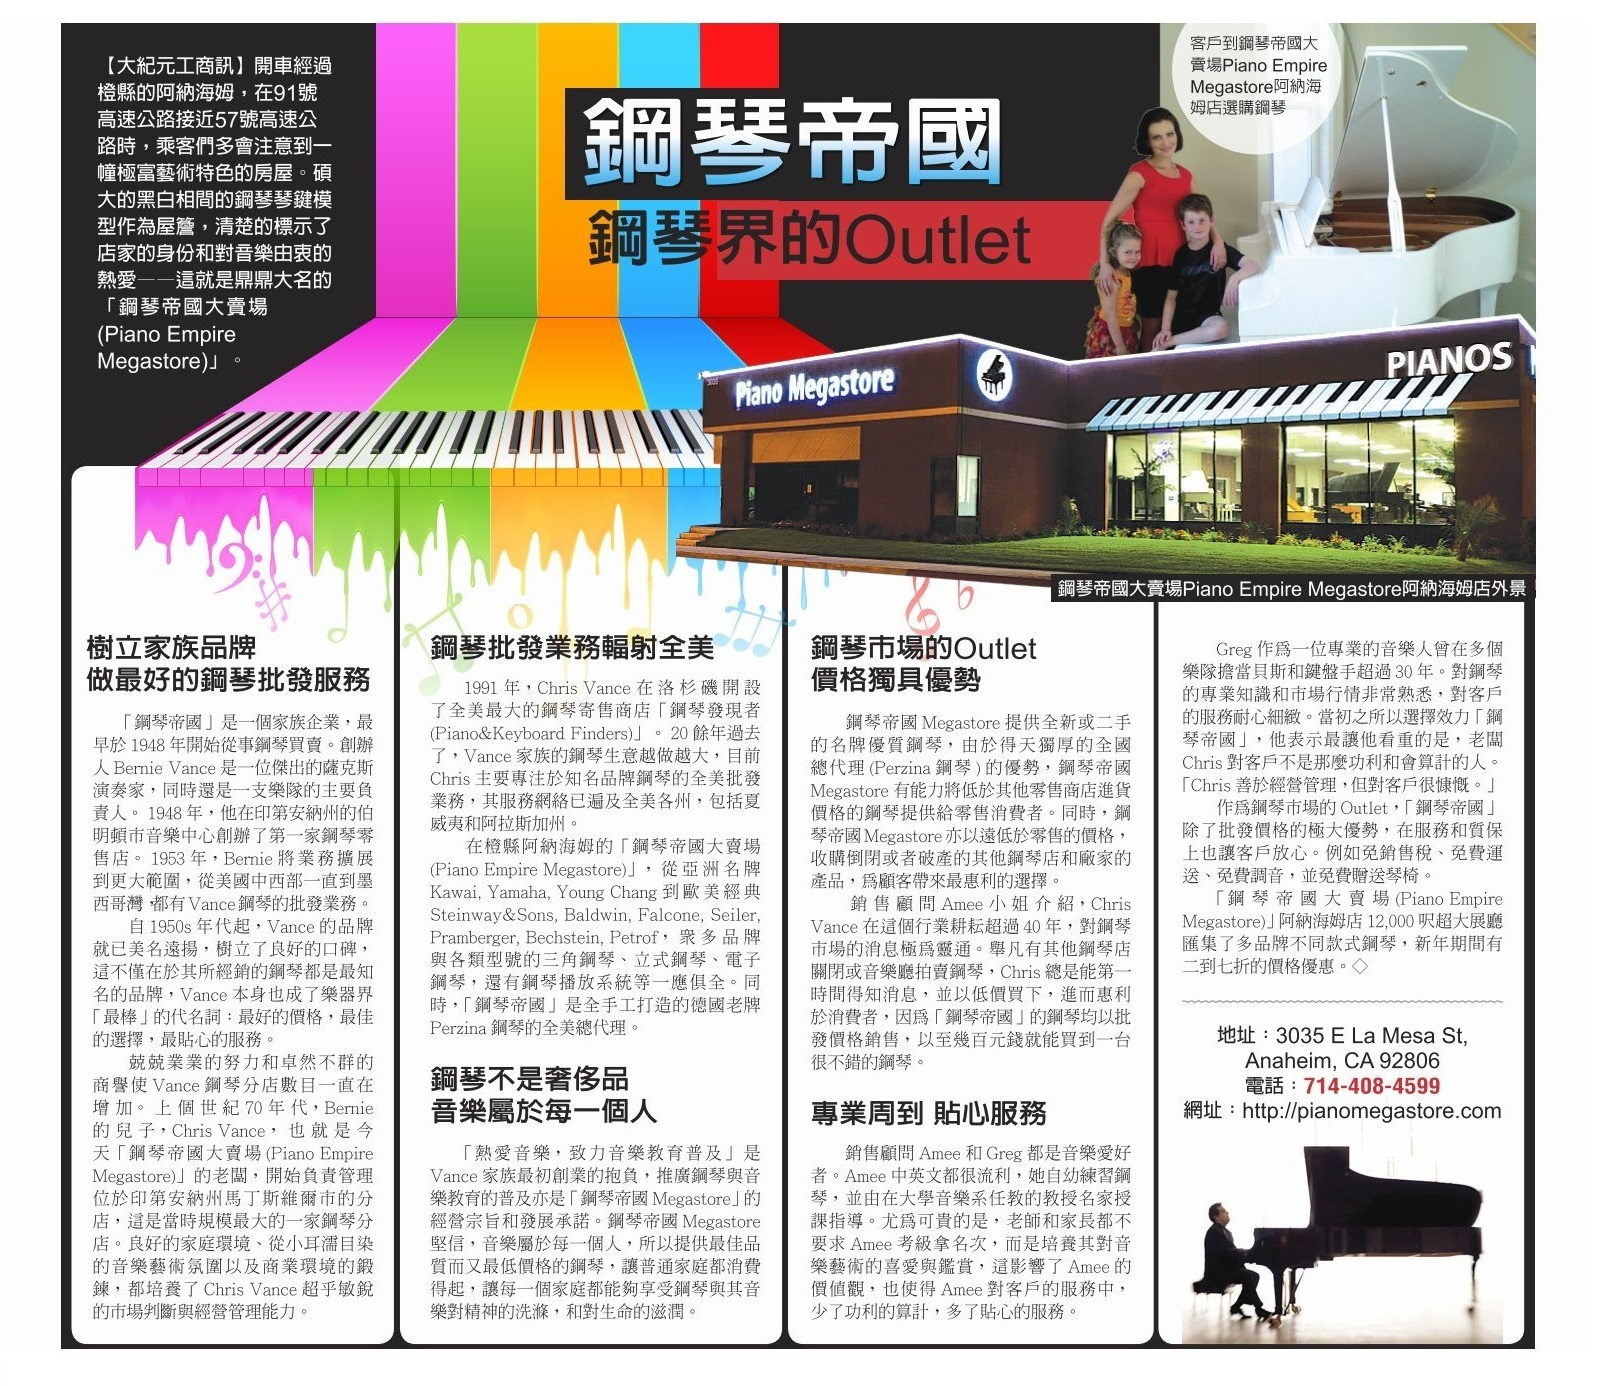 Piano Megastore Article